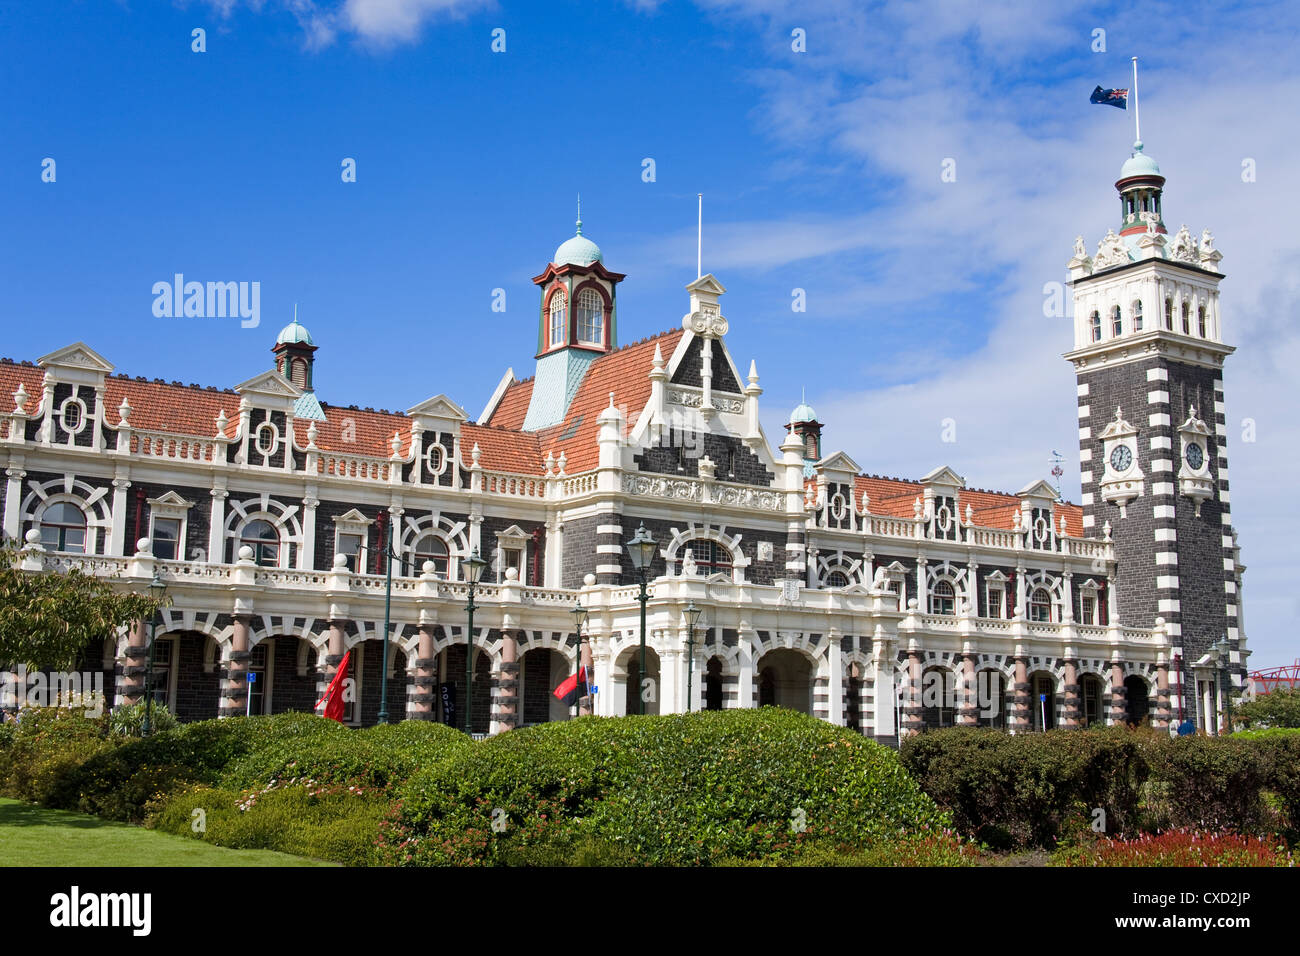 Railway Station, Central Business District, Dunedin, Otago District, South Island, New Zealand, Pacific - Stock Image